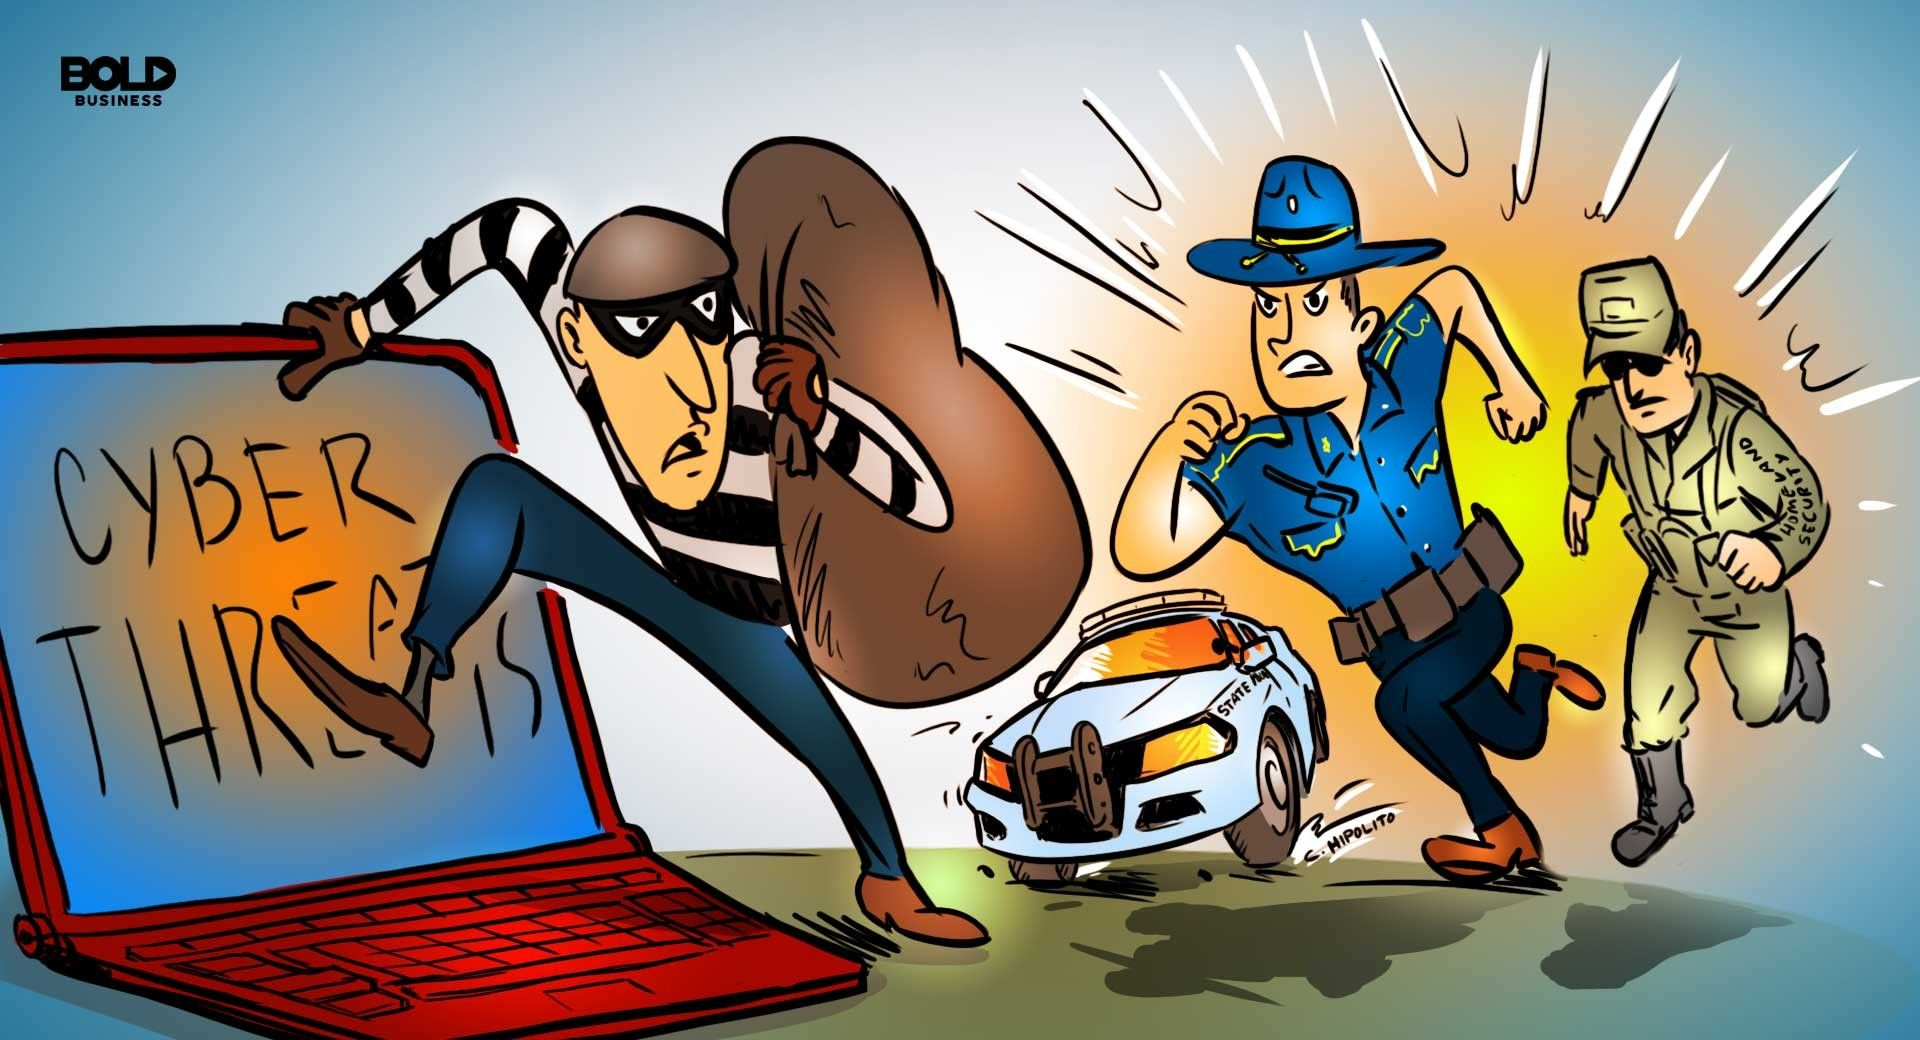 cartoon of cybersecurity culprit being chased by police officers